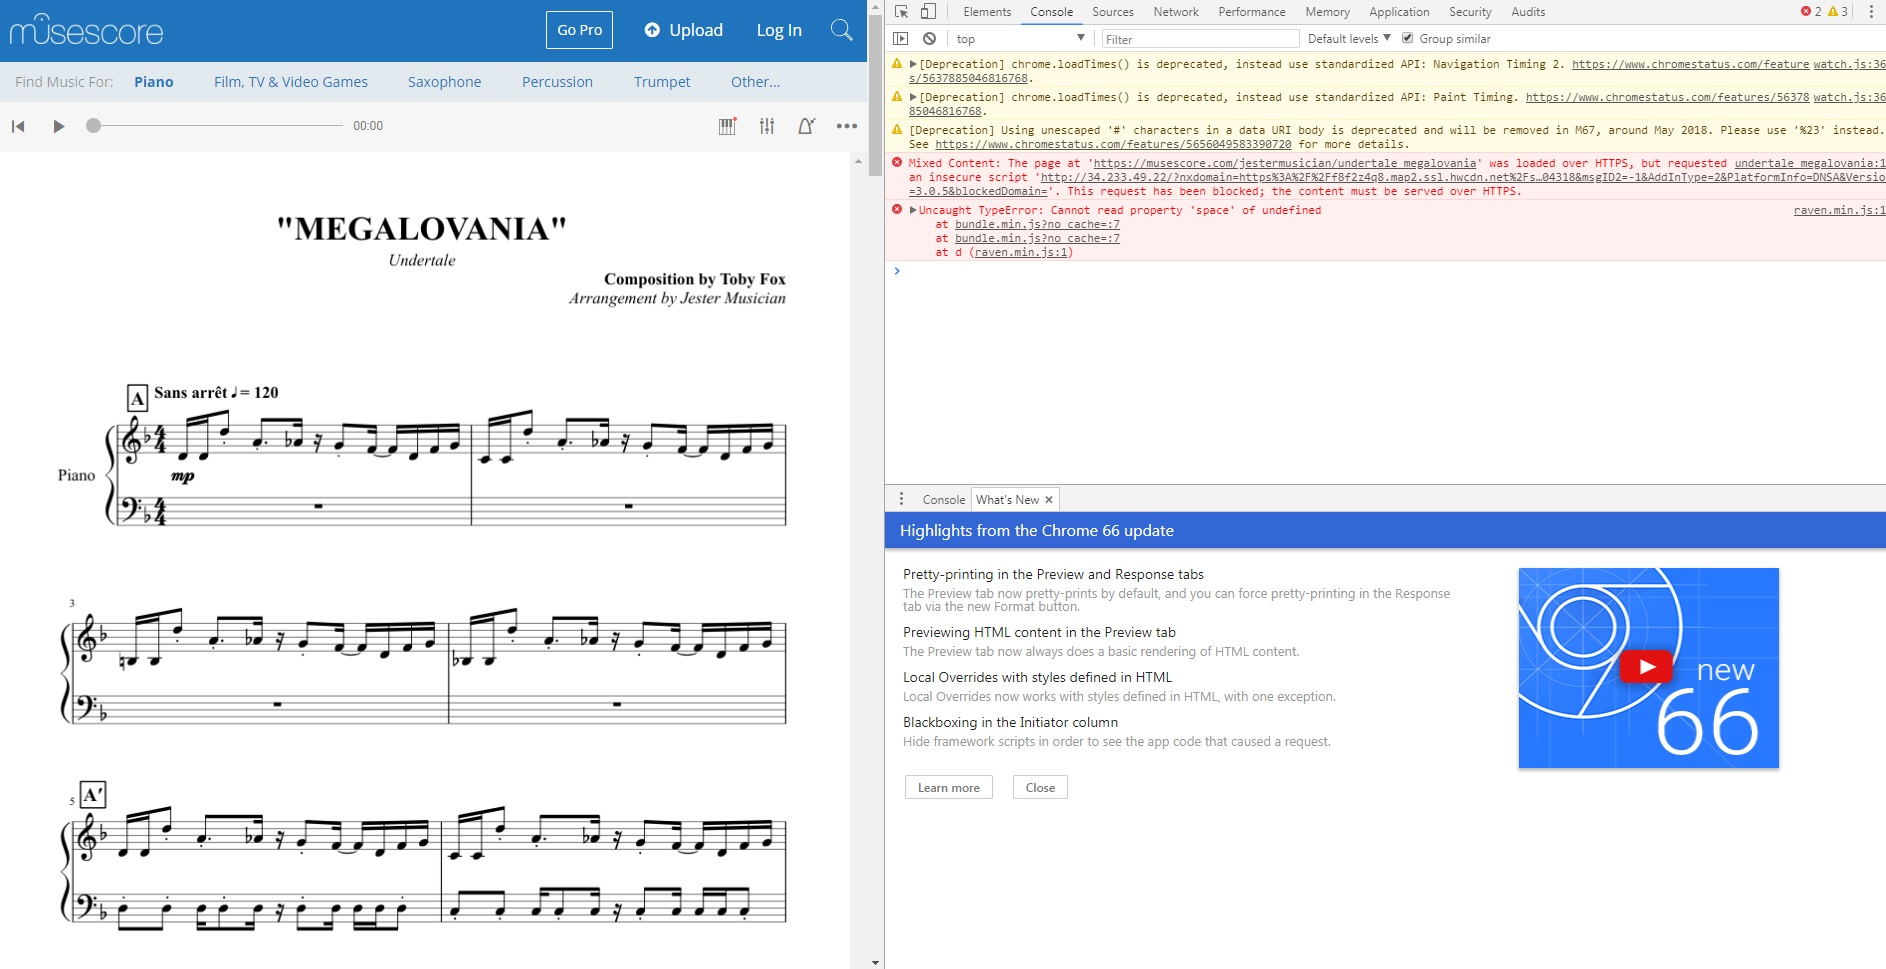 Can't play song or scroll through music sheet on website